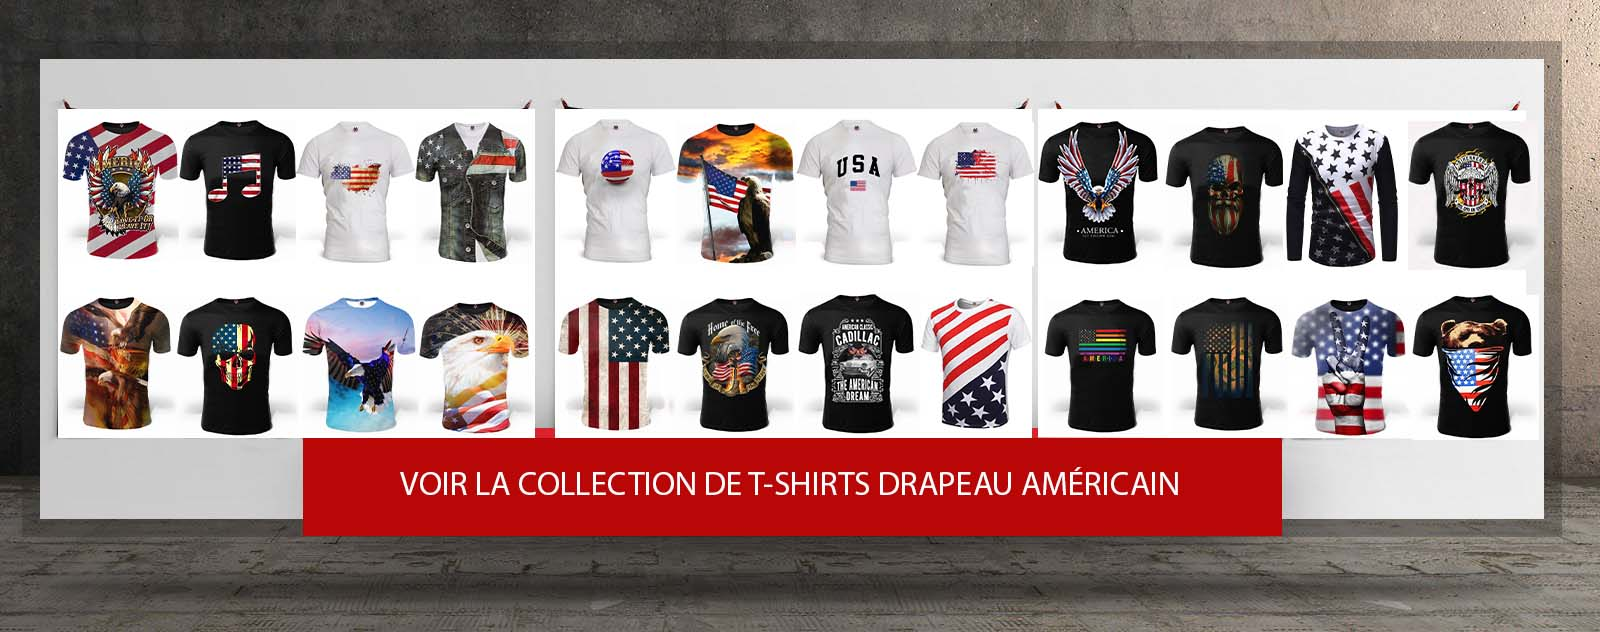 banniere lien vers la collection de t shirts drapeau americain